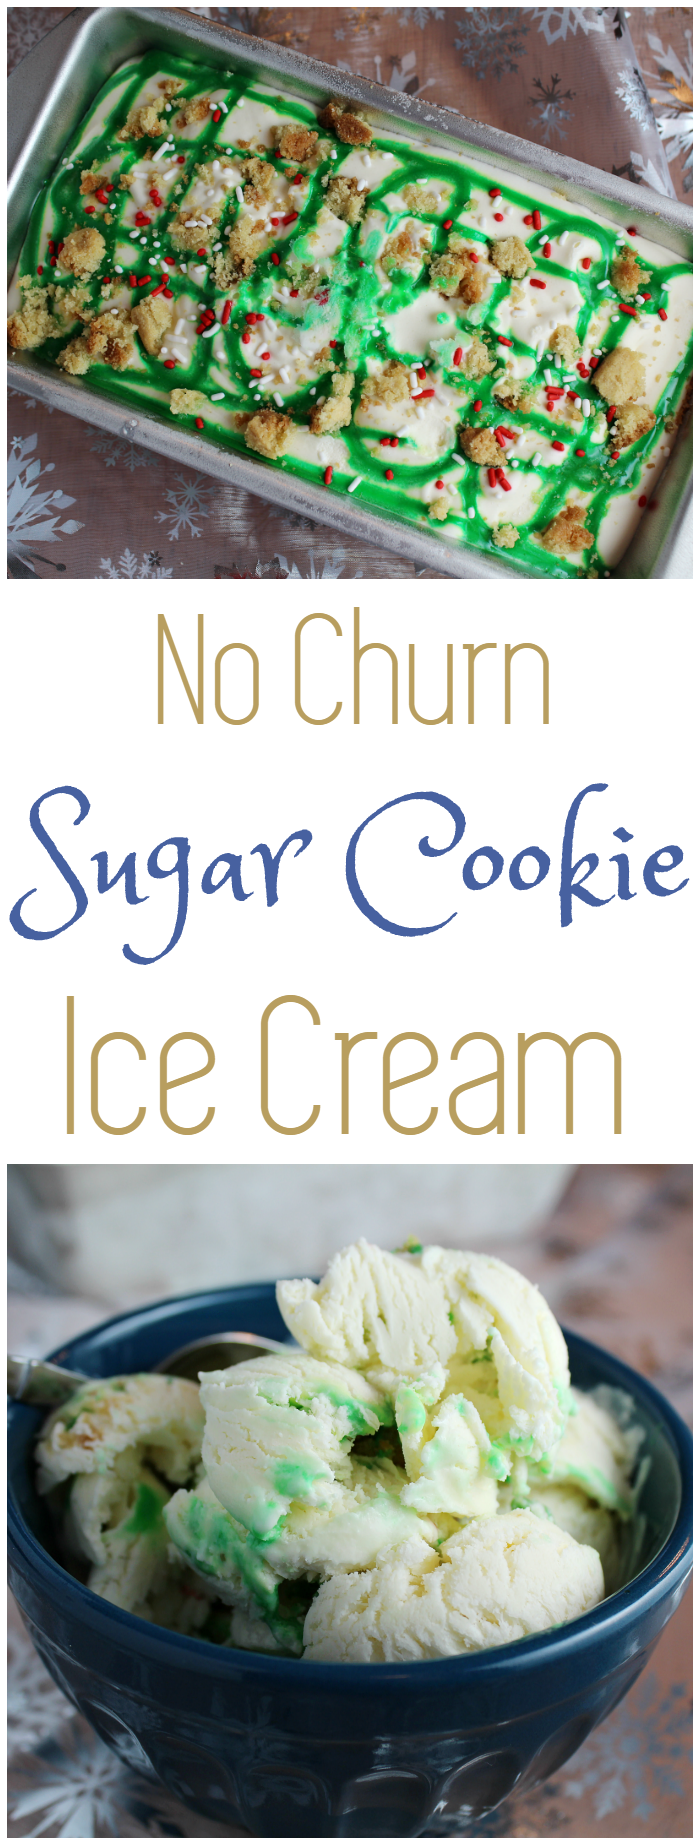 When I think about the cooler months and the holidays, I think about frosted sugar cookies with sprinkles on top. So, that's exactly what I wanted in this No Churn Sugar Cookie Ice Cream.